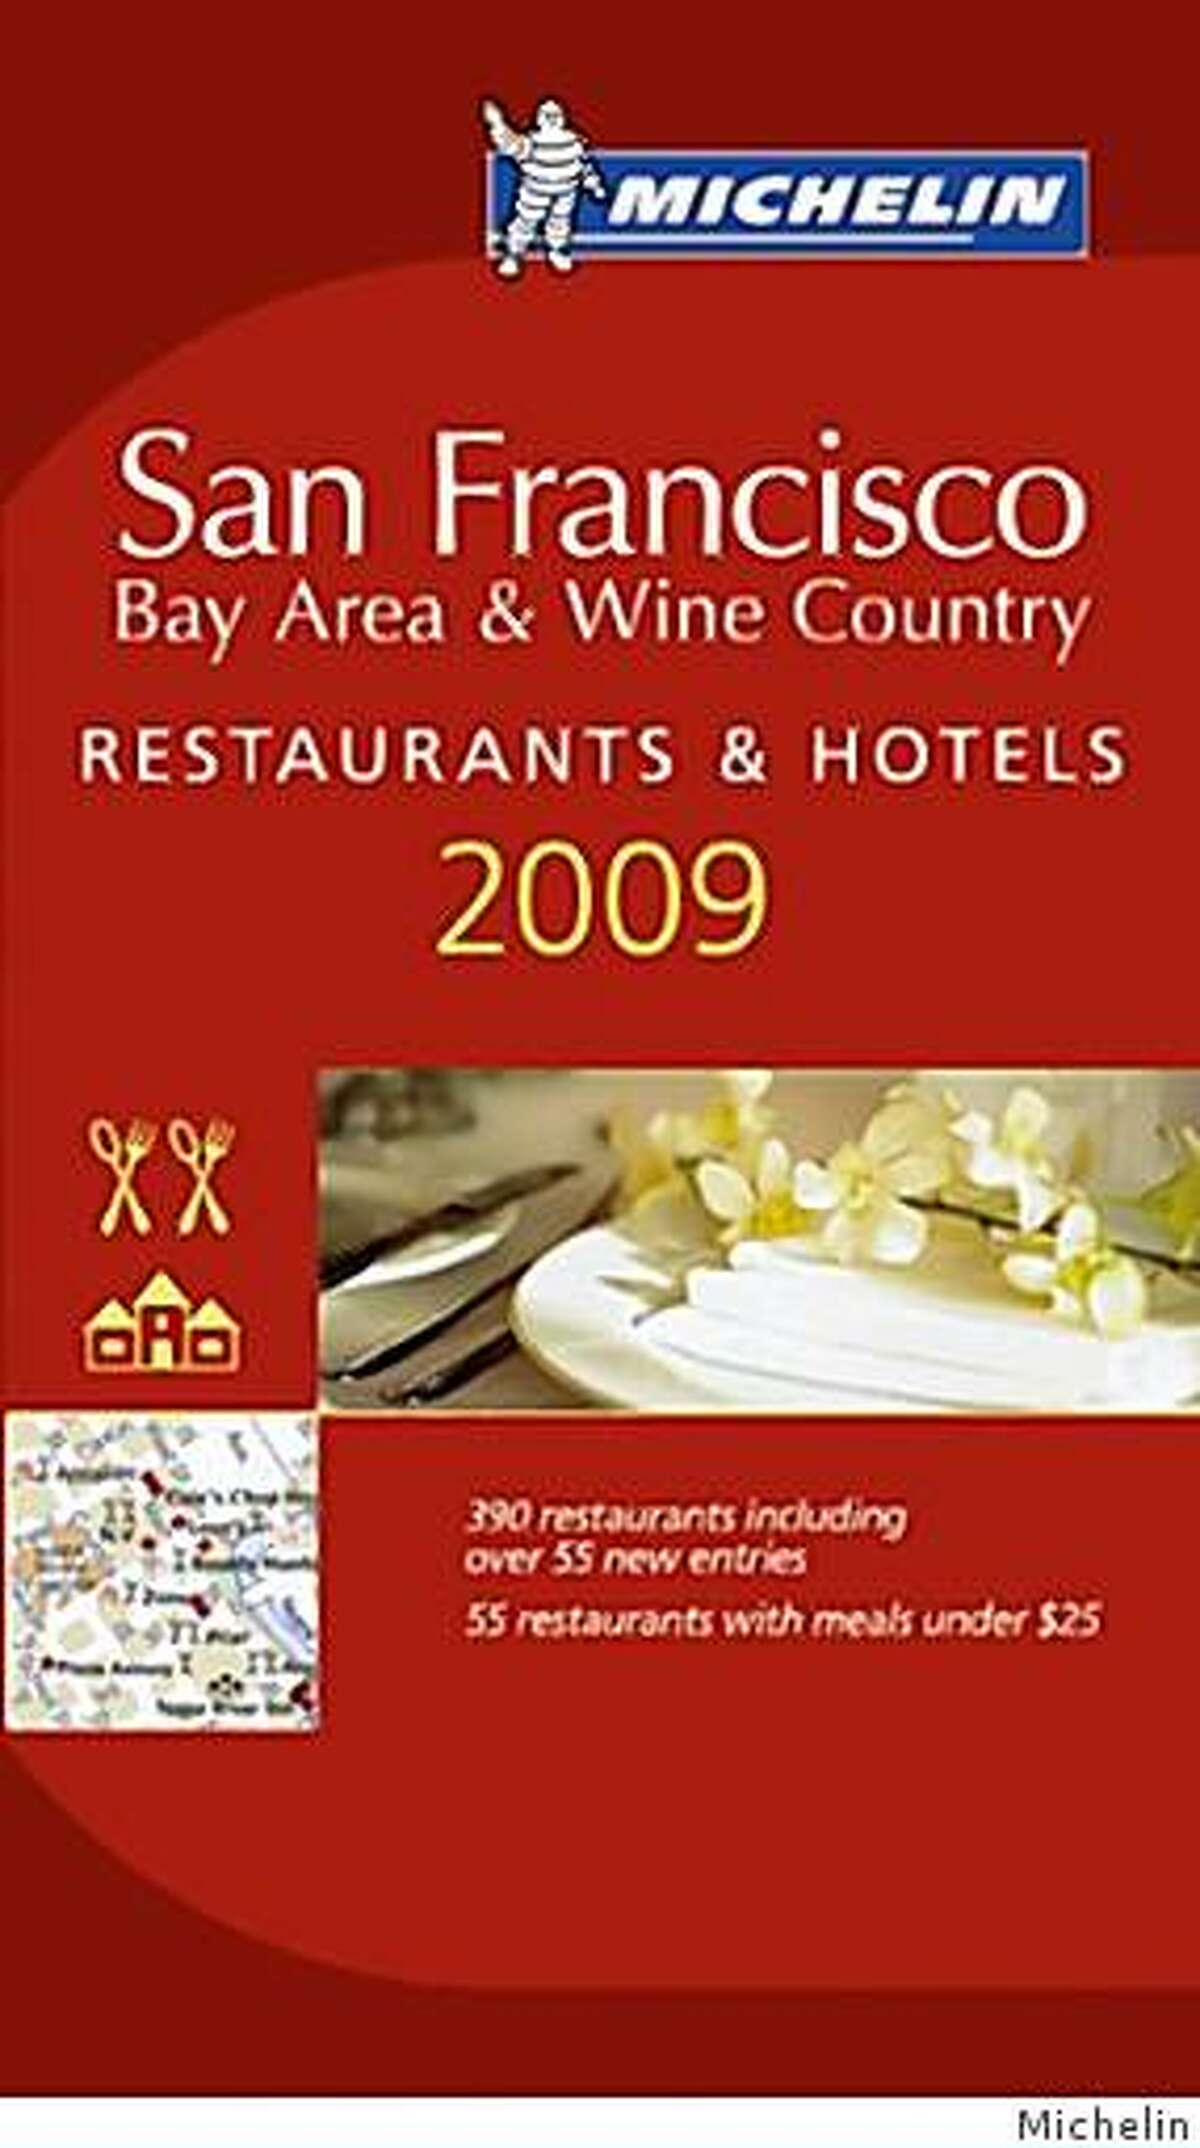 2009 Michelin guide to the San Francisco Bay Area and Wine Country